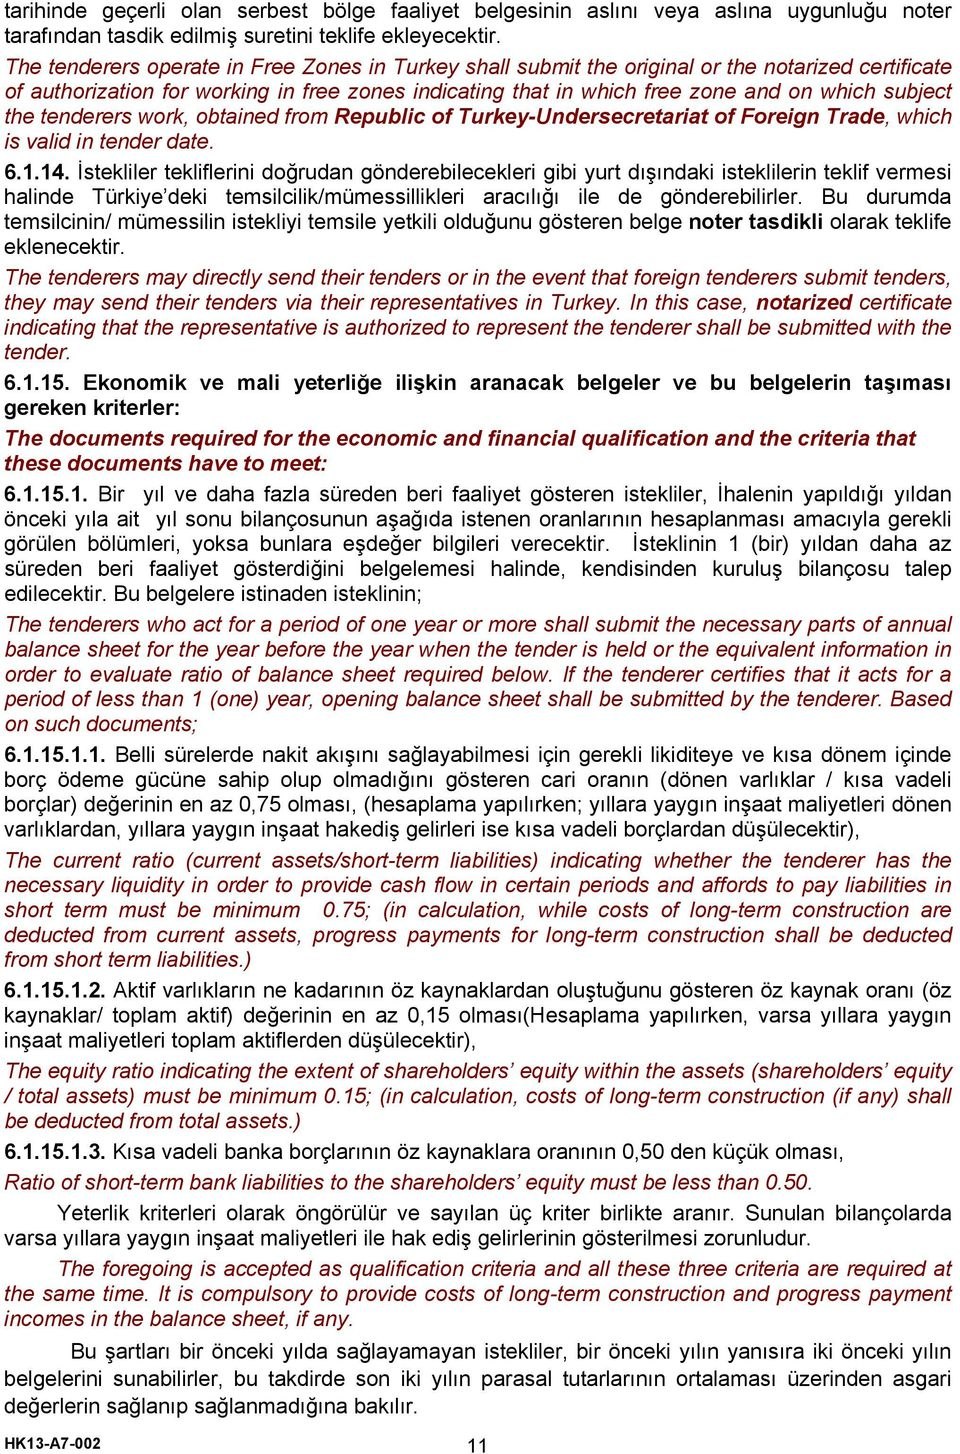 the tenderers work, obtained from Republic of Turkey-Undersecretariat of Foreign Trade, which is valid in tender date. 6.1.14.